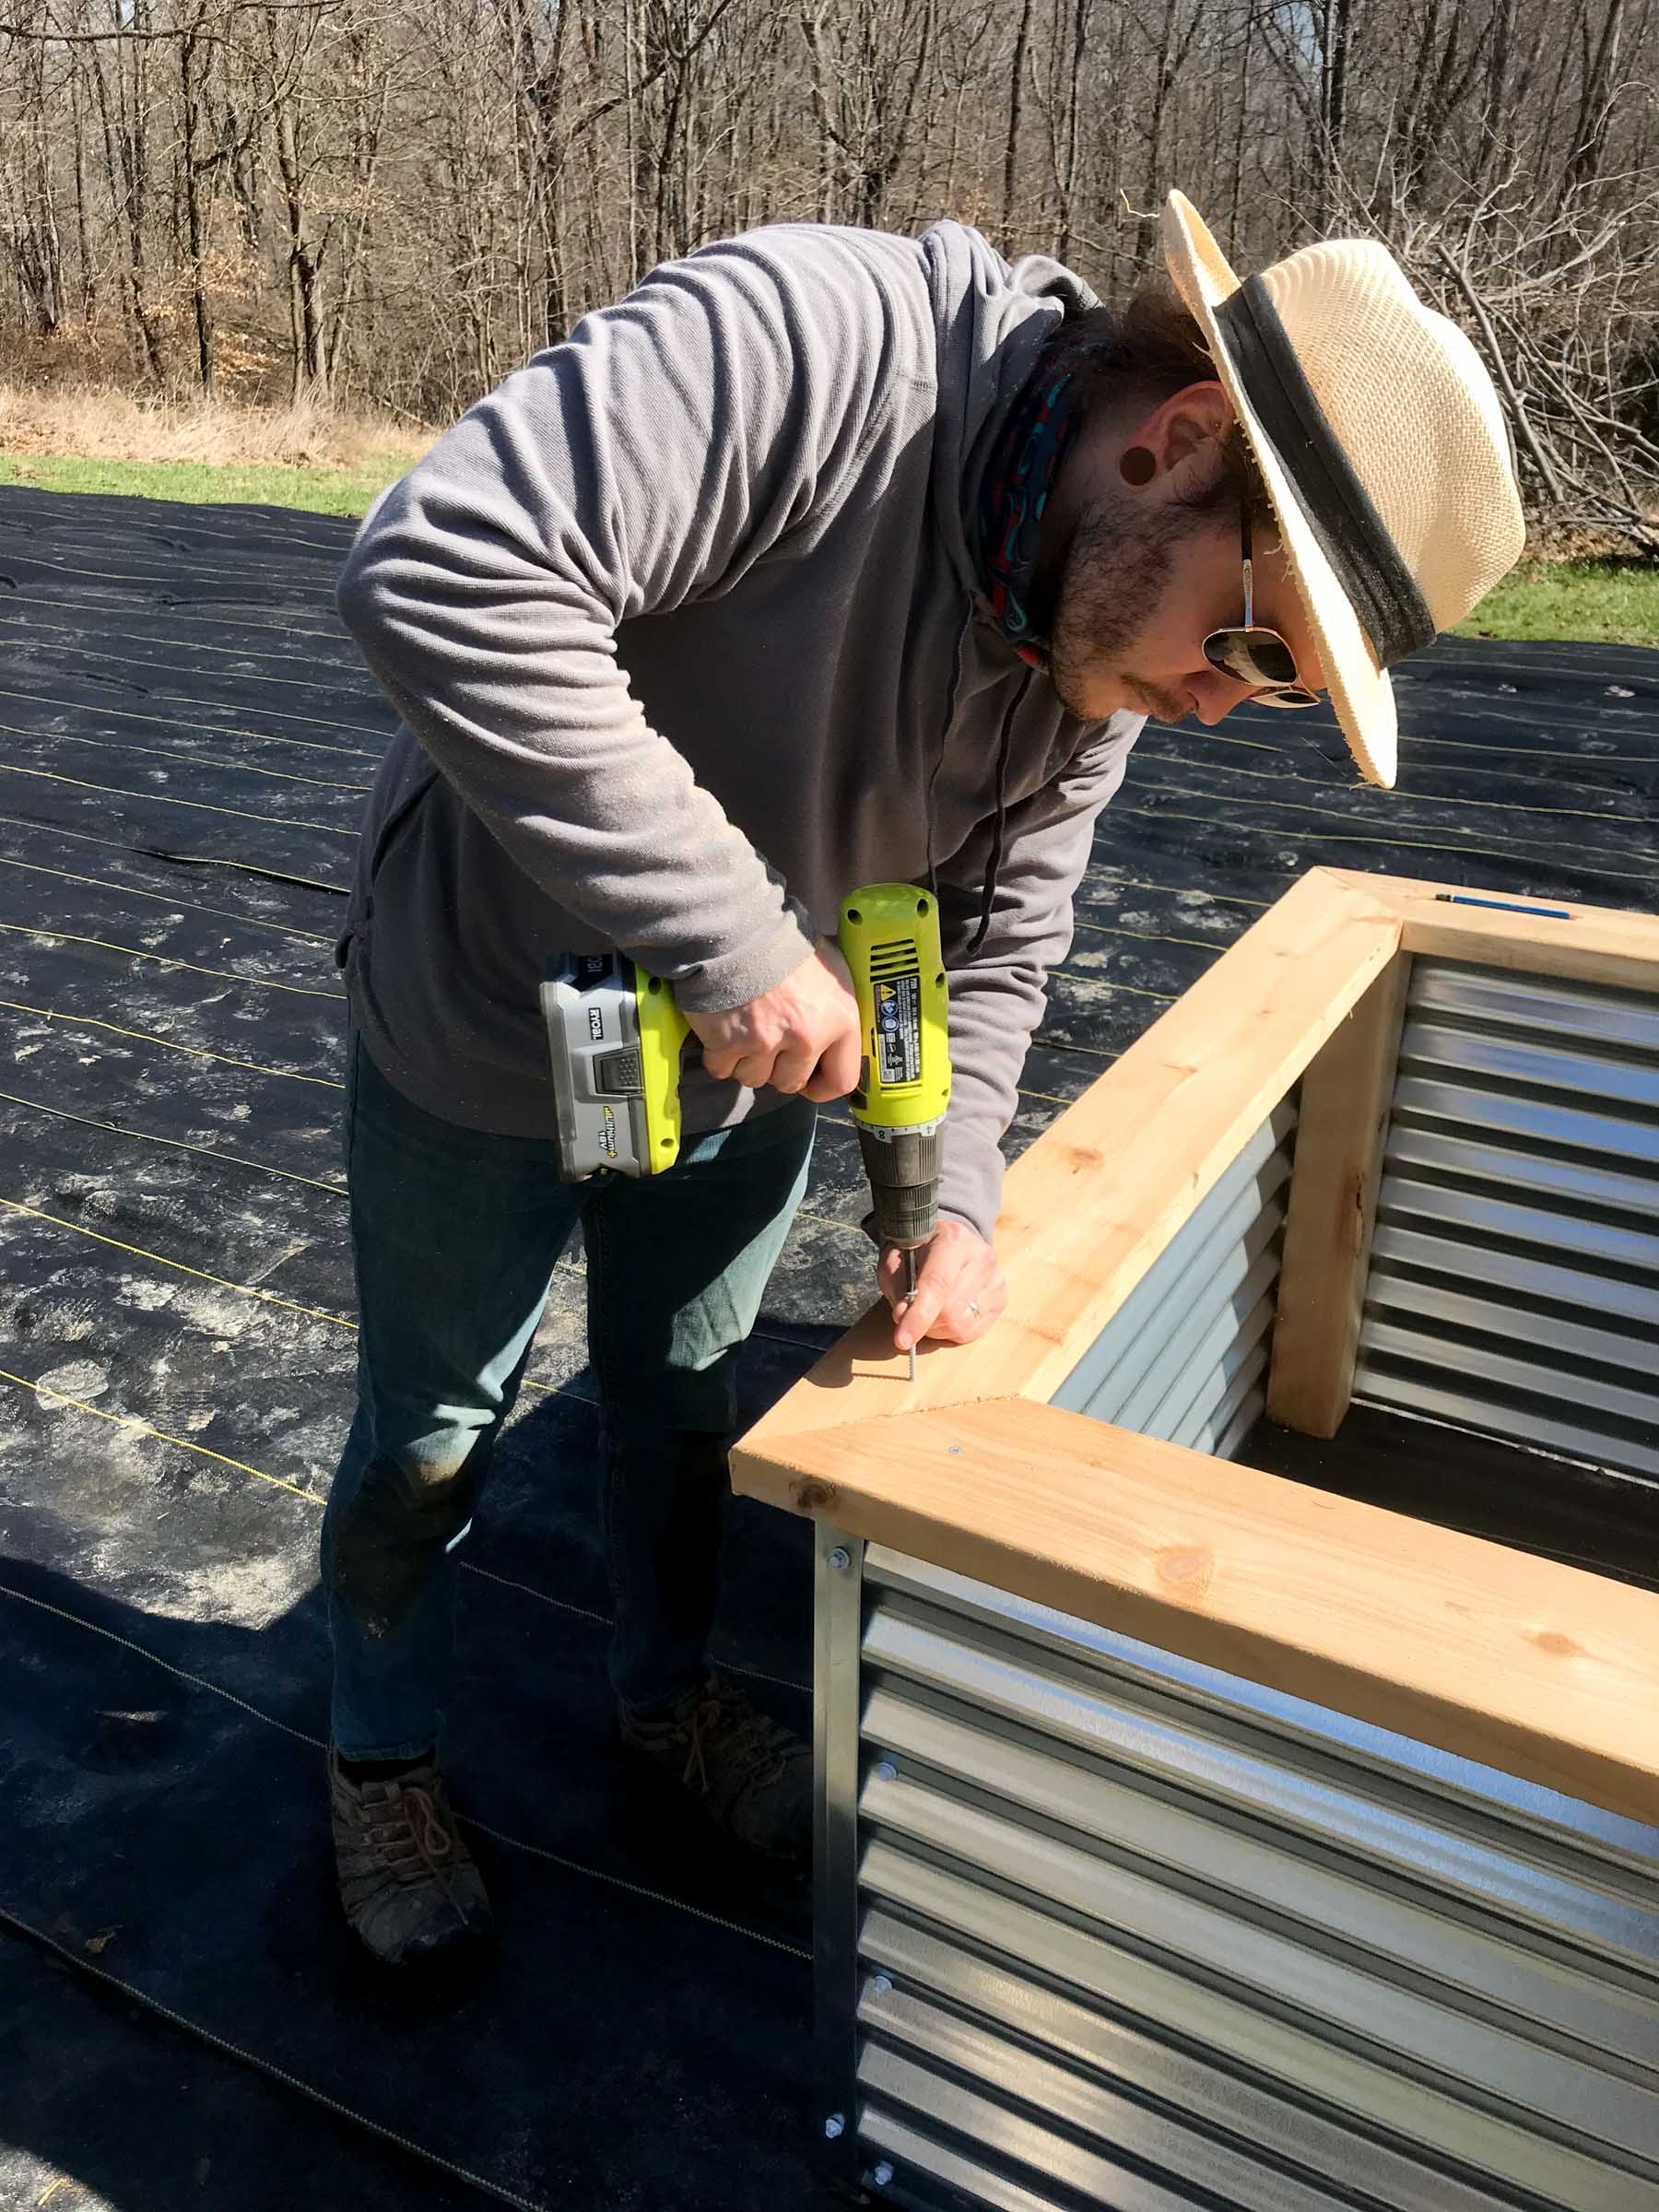 Building a raised bed - adding cedar boards to top of bed made of steel panels and cedar supports